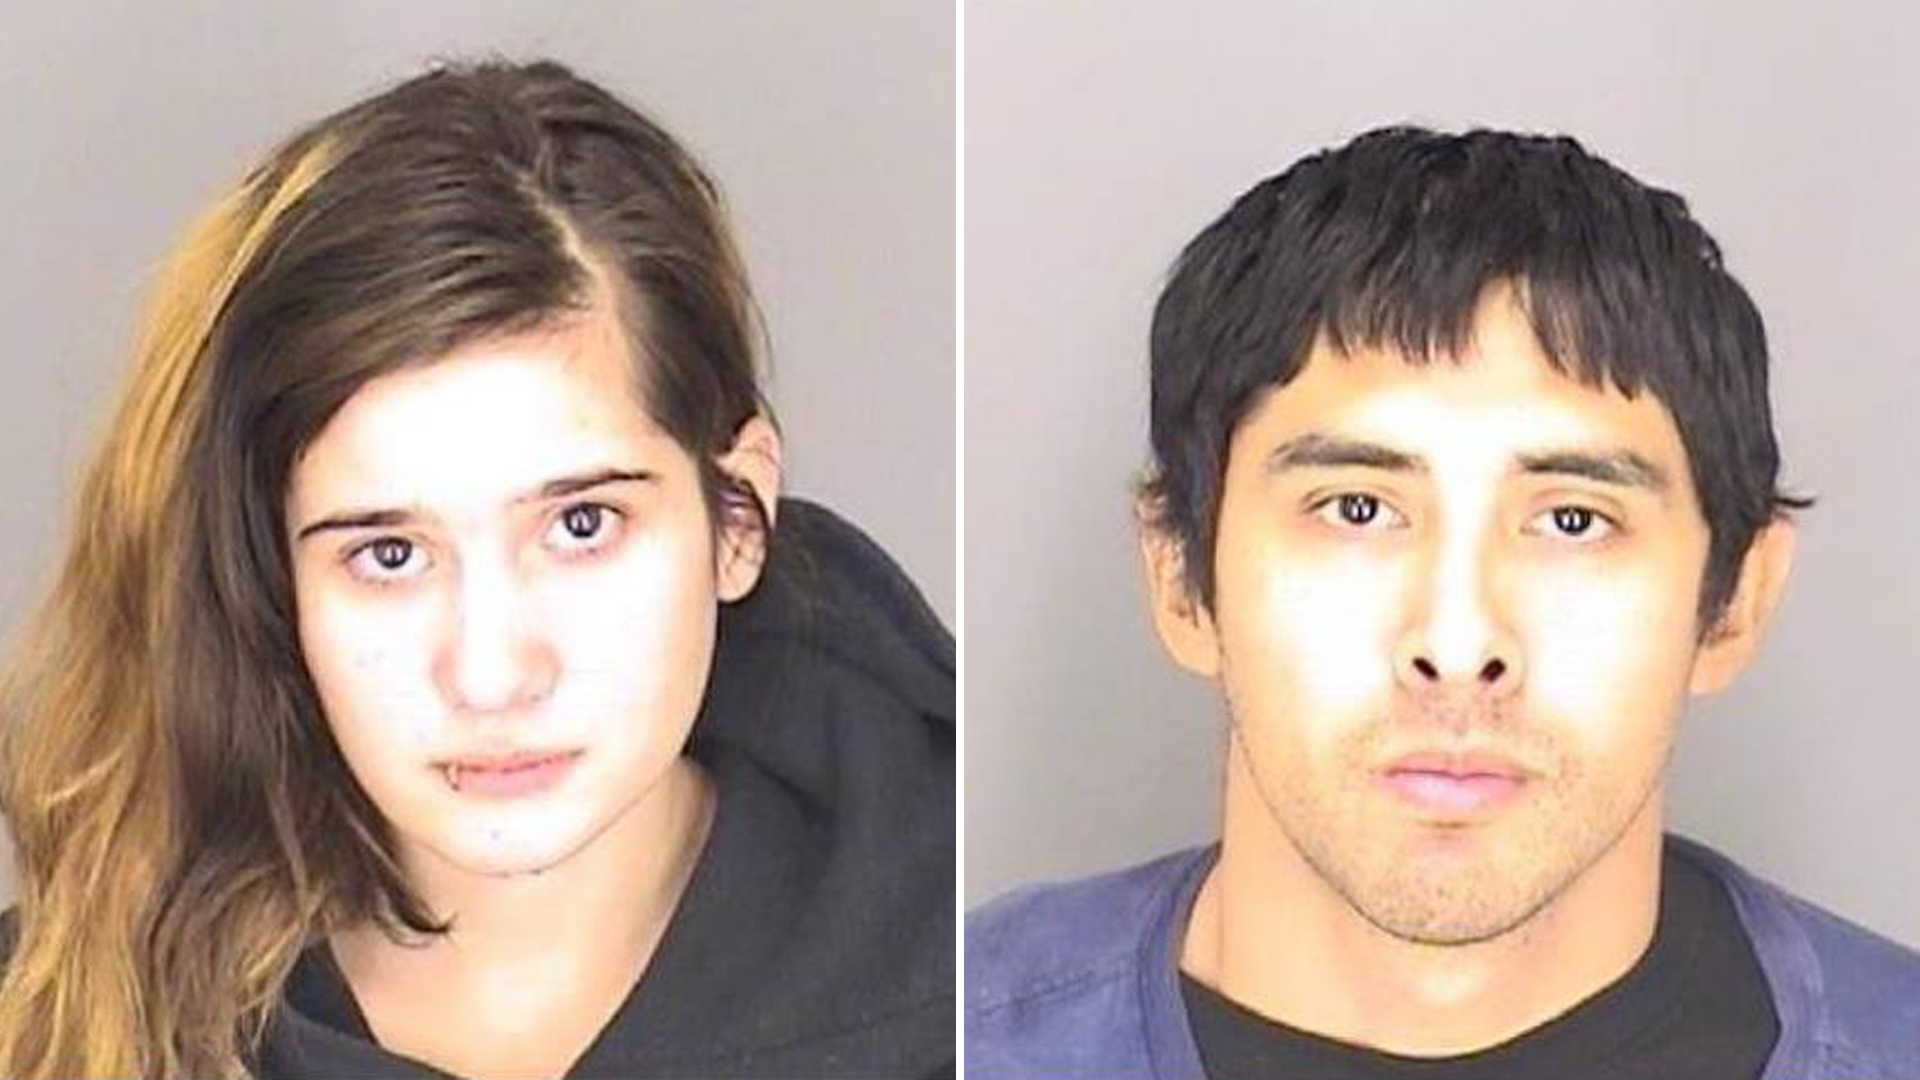 Chanish Conrady and Steven Perez Jr. in photos released by the Merced County Sheriff's Office on Nov. 21, 2018.